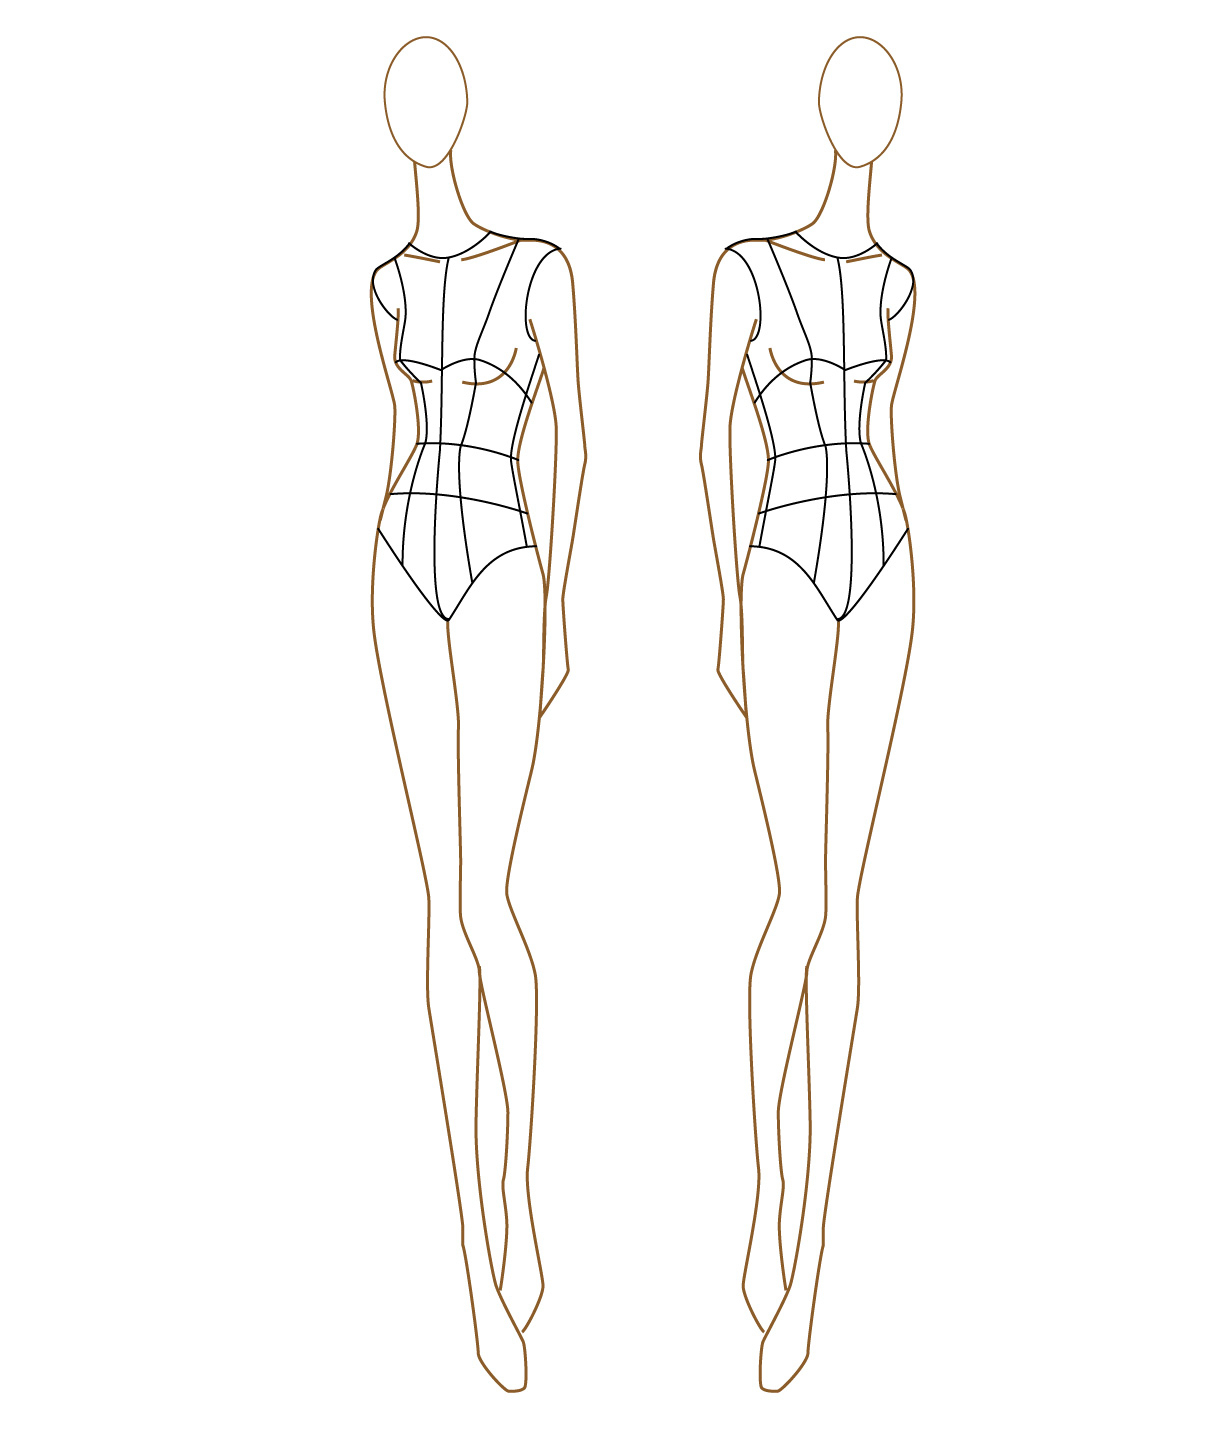 2 Drawing Mannequin Fashion Design For Free Download On Ayoqq - Free Printable Fashion Model Templates